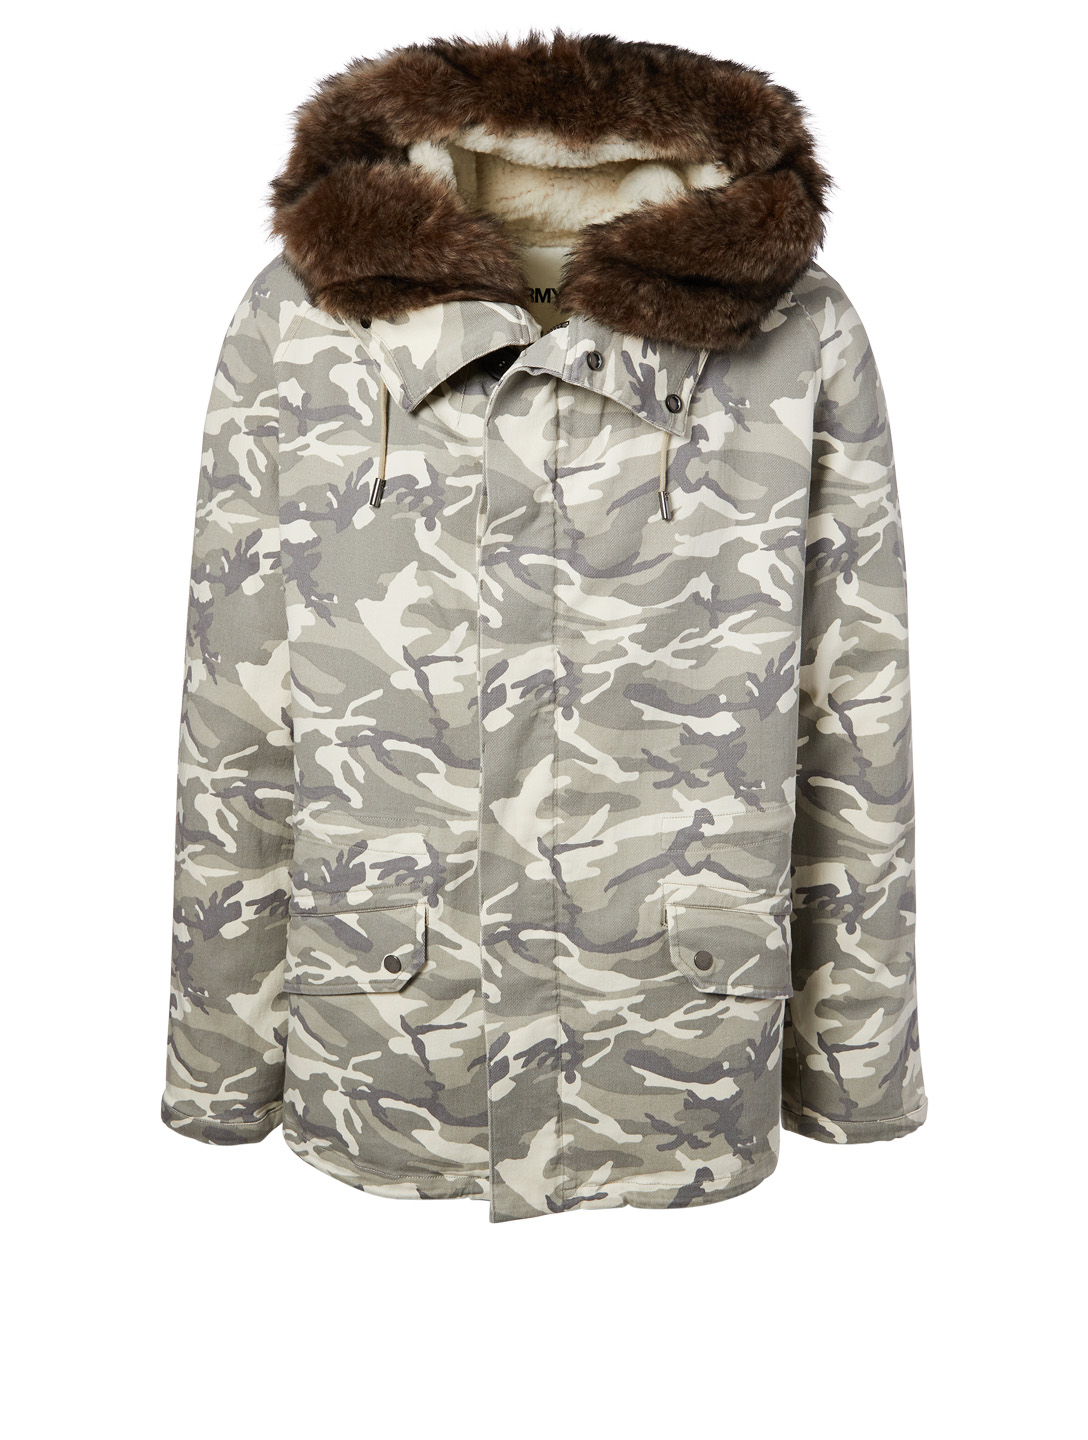 89dbf3936c0ae YVES SALOMON - ARMY Shearling-Lined Parka In Camo Print Men's White ...